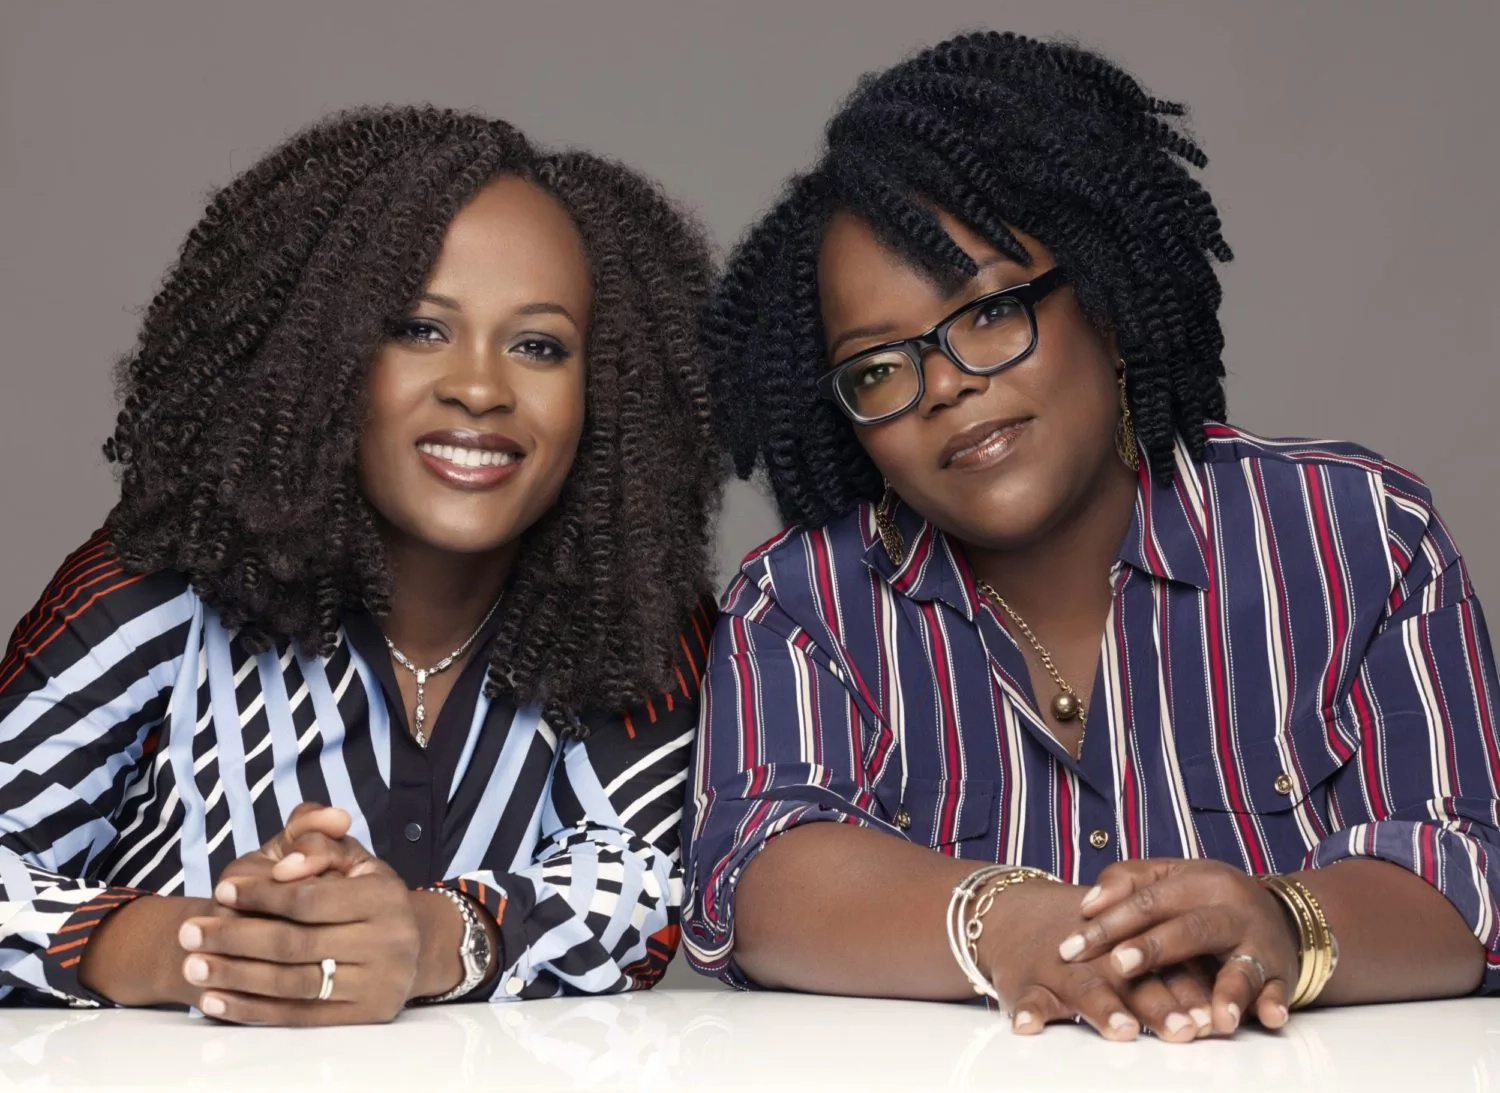 These talented African sisters developed skin products designed specially for DARK skins (photos)